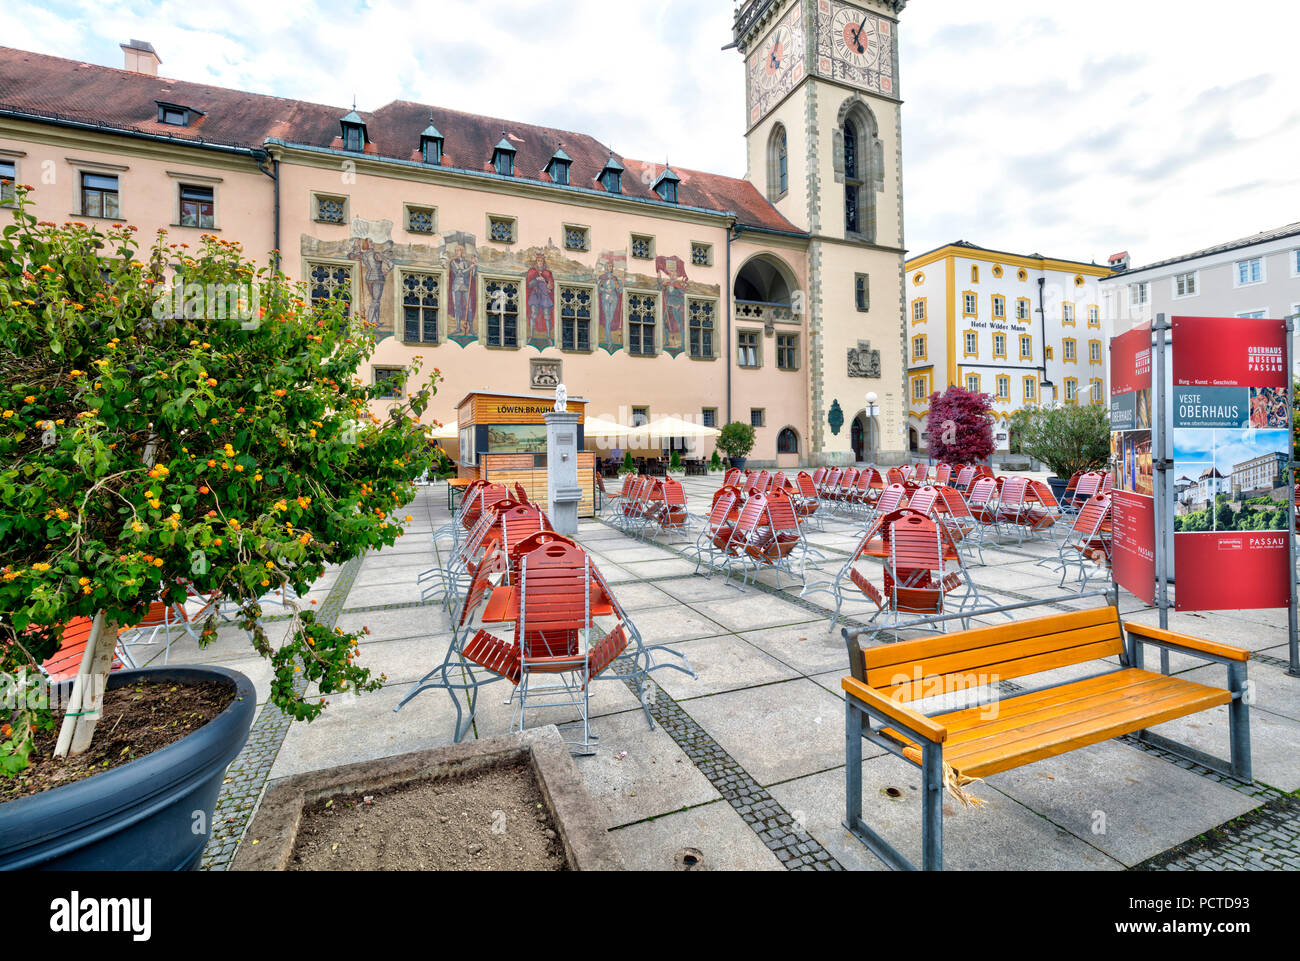 Old main customs office, town hall square, street cafe, house facade, city architecture, Passau, Lower Bavaria, Bavaria, Germany - Stock Image